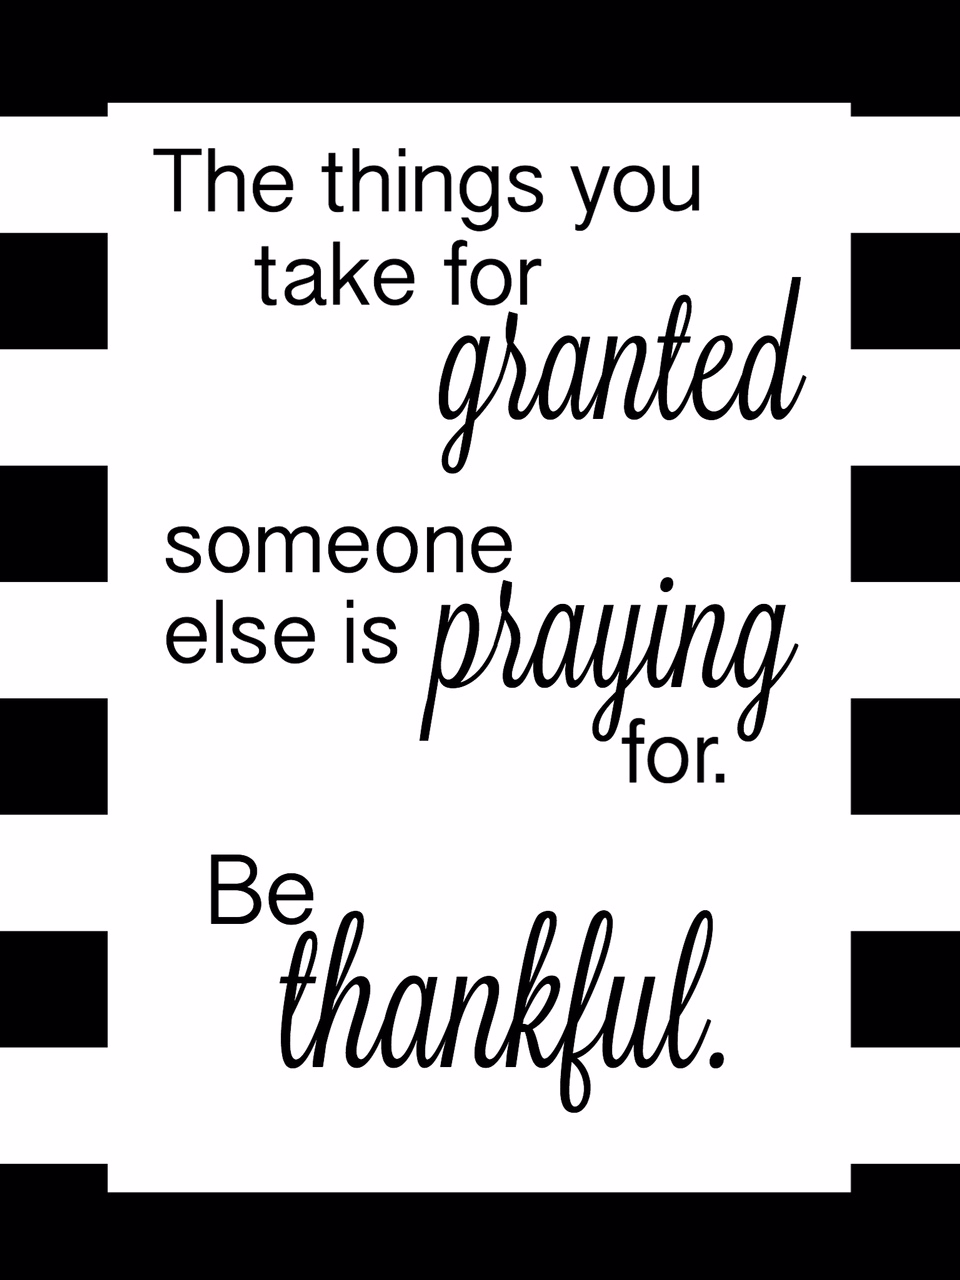 thankful quote.JPG